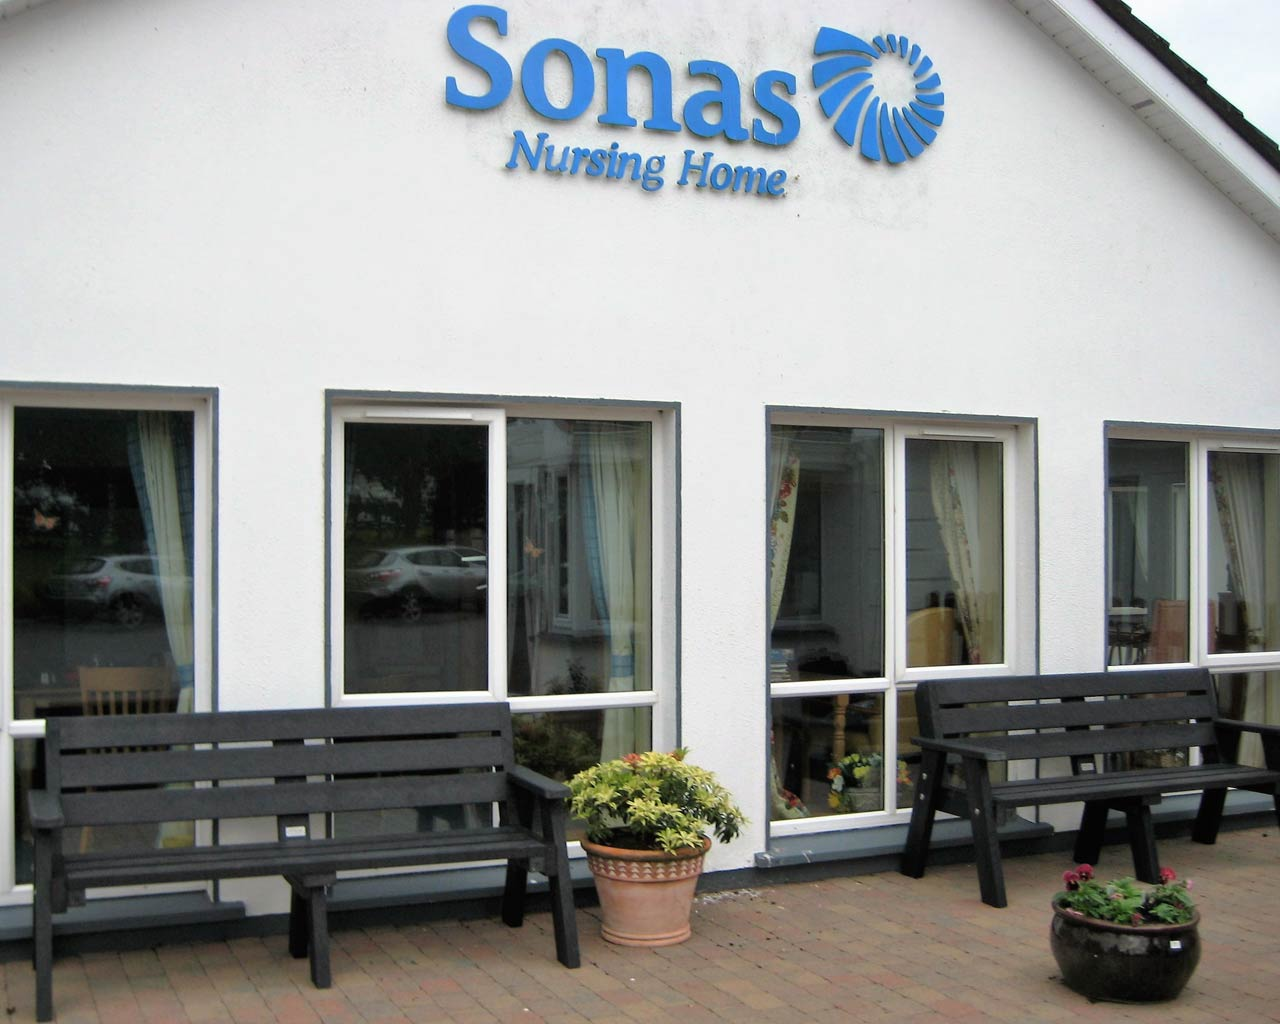 Sonas Nursing Homes